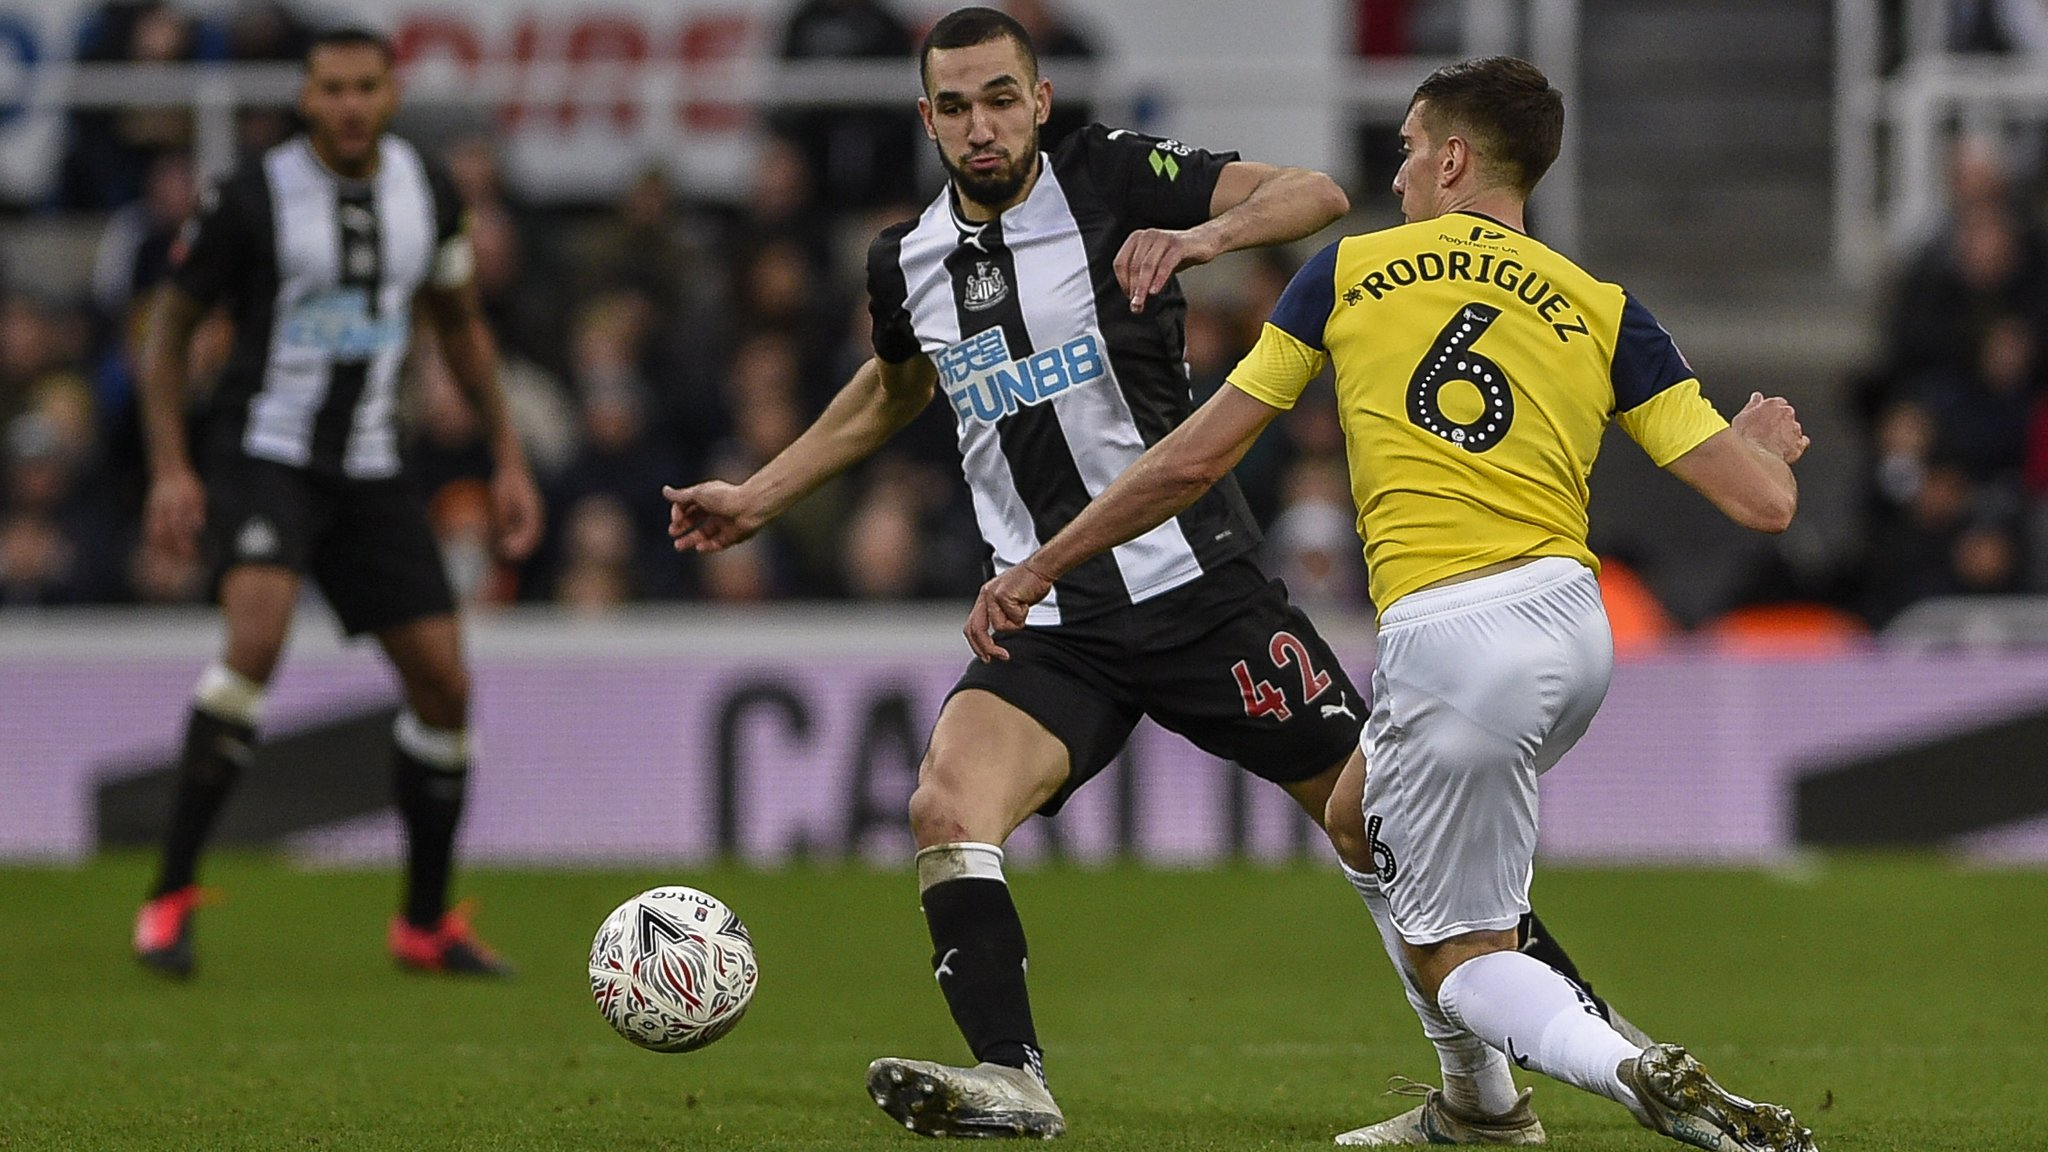 Alex Rodriguez of Oxford compete for the ball with Nabil Bentaleb of Newcastle during the FA Cup match between Newcastle United and Oxford United at St. James's Park, Newcastle on Saturday 25th January 2020. (Photo by Iam Burn/MI News/NurPhoto via Getty Images)